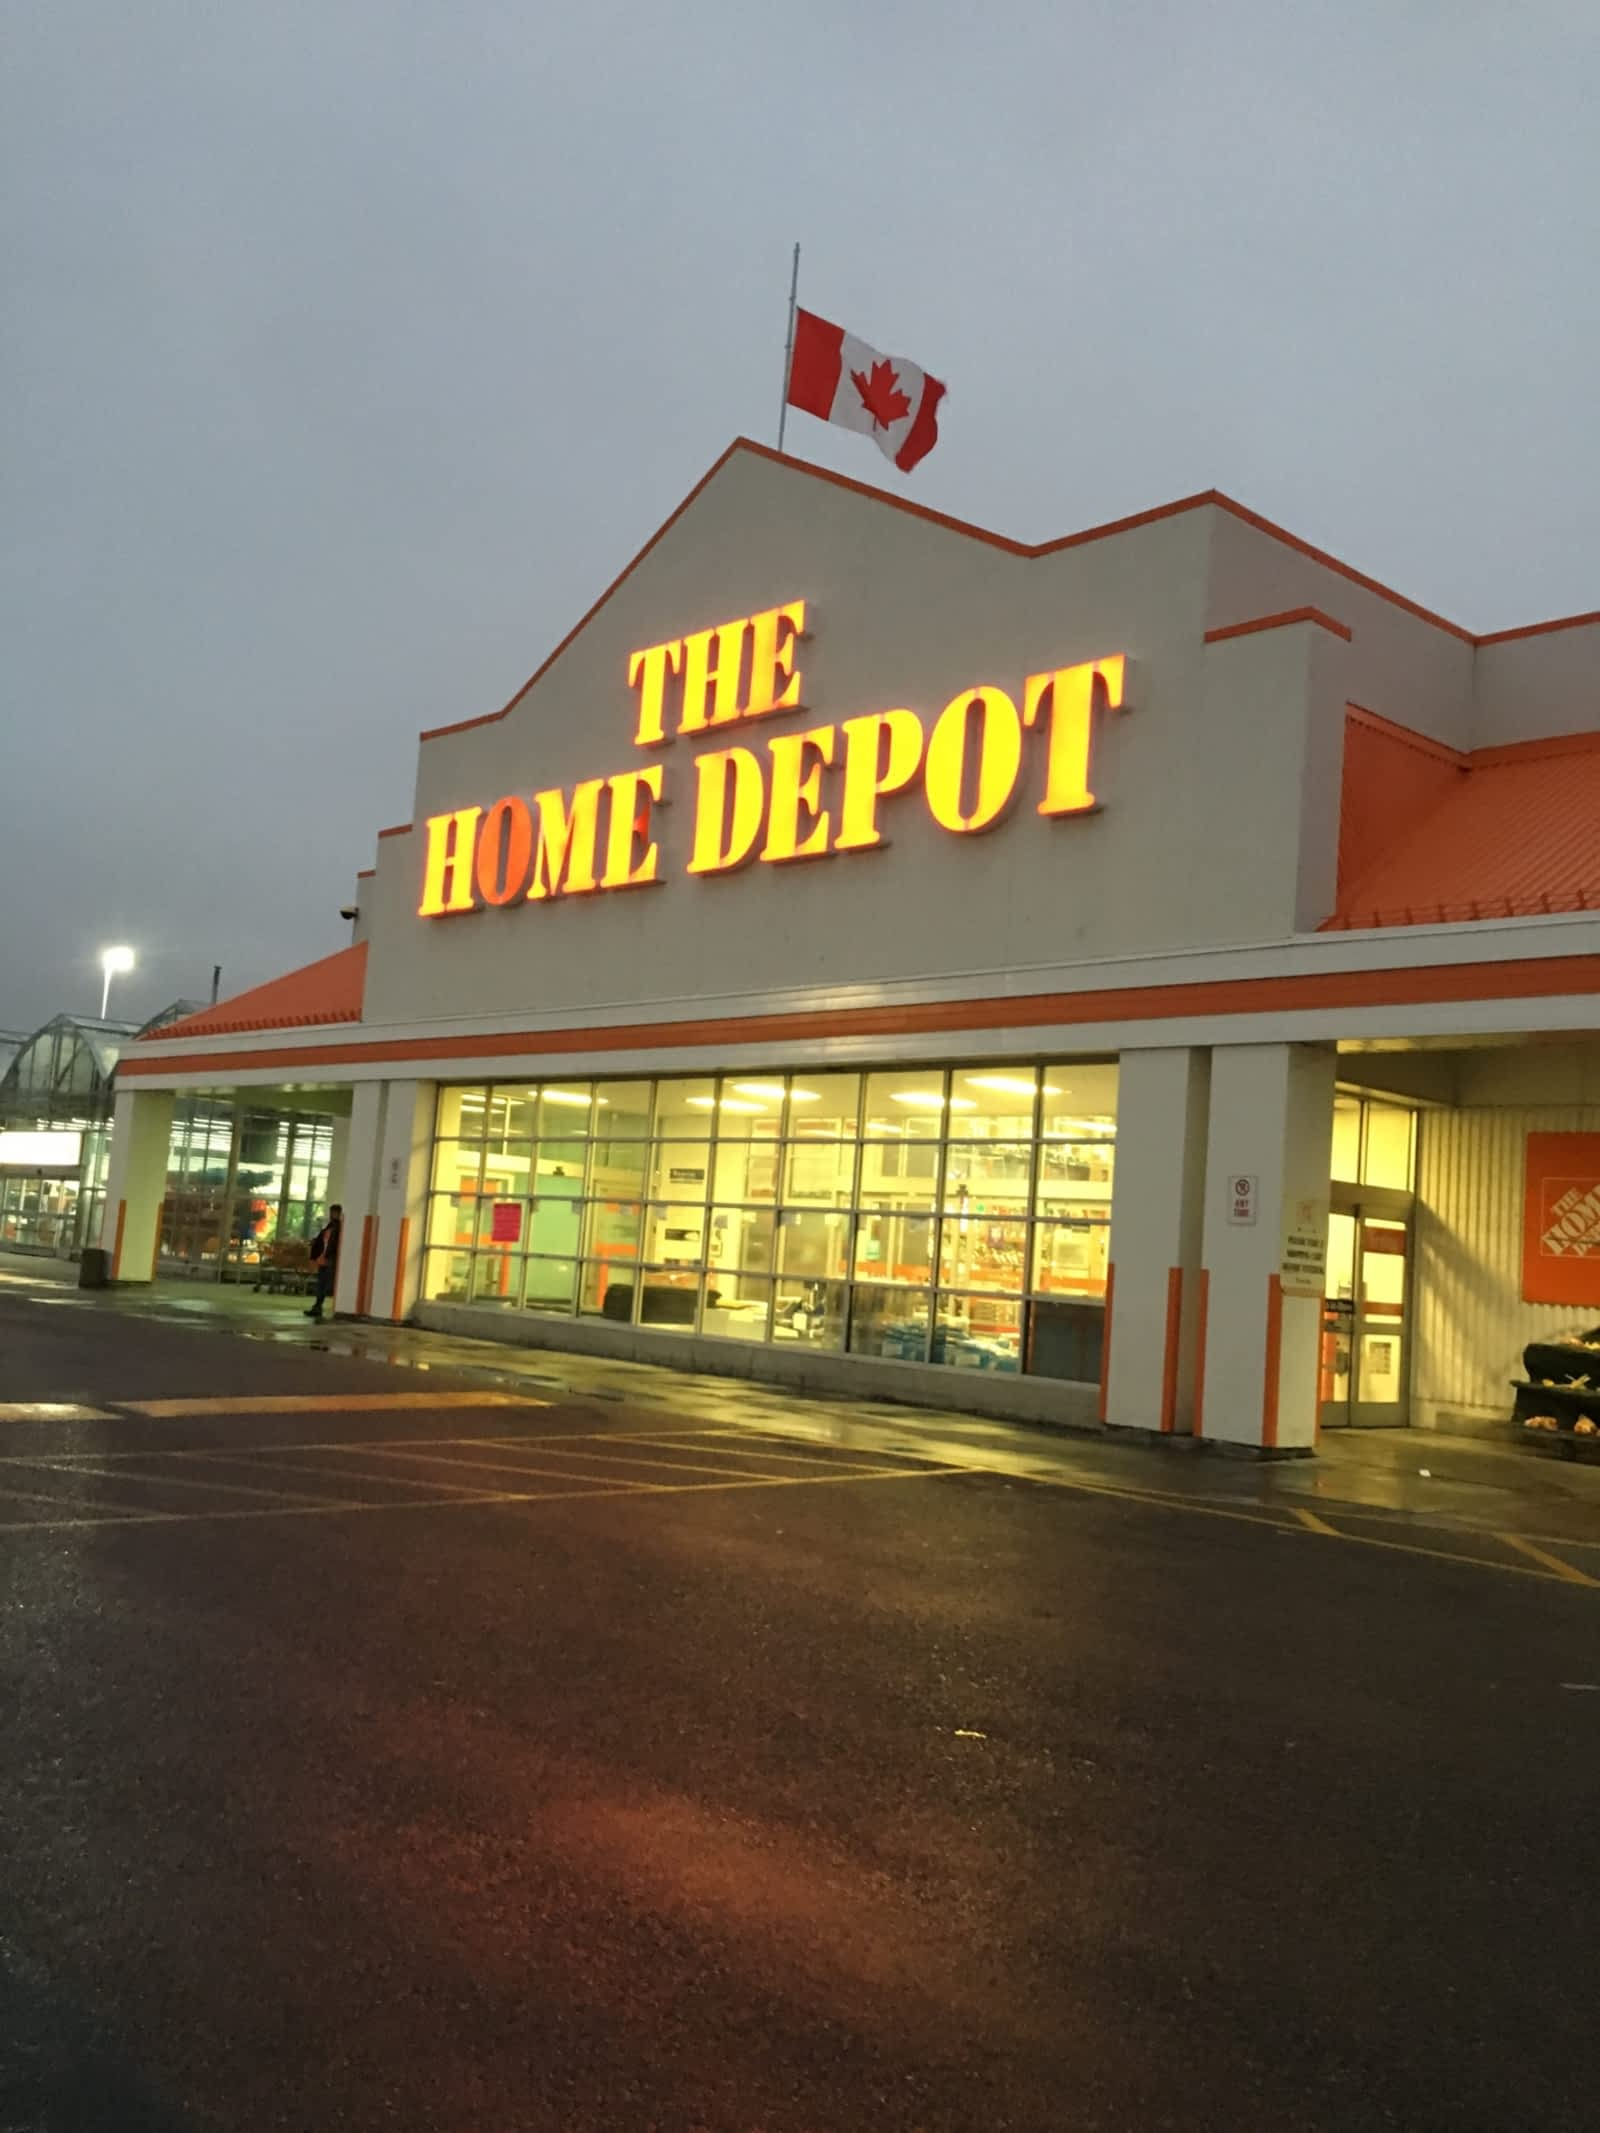 Home Depot Holiday Hours The Home Depot Opening Hours 343 36th St Ne Calgary Ab